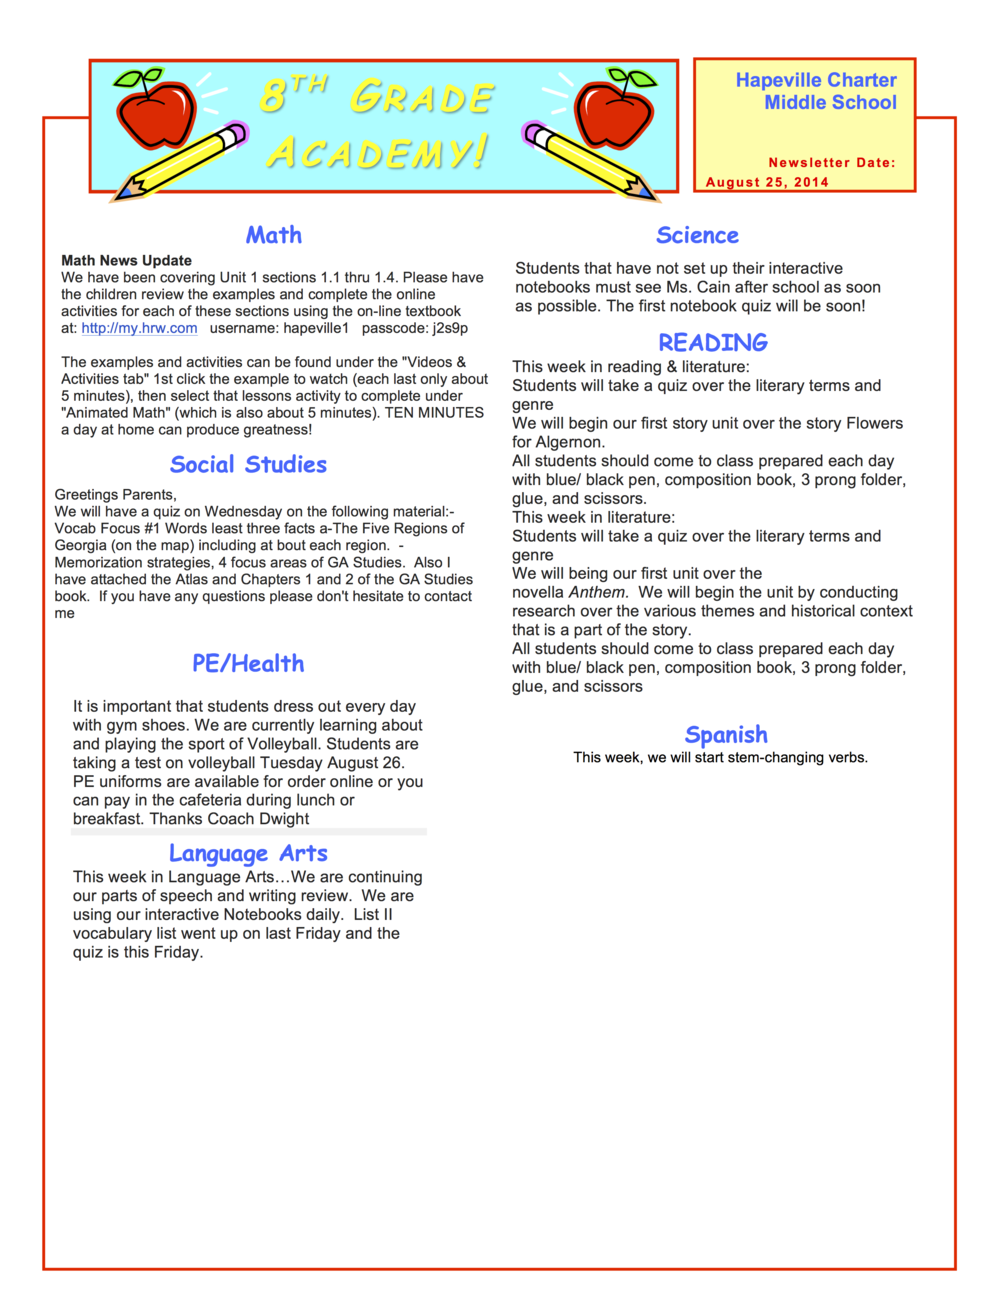 8th grade newsletter